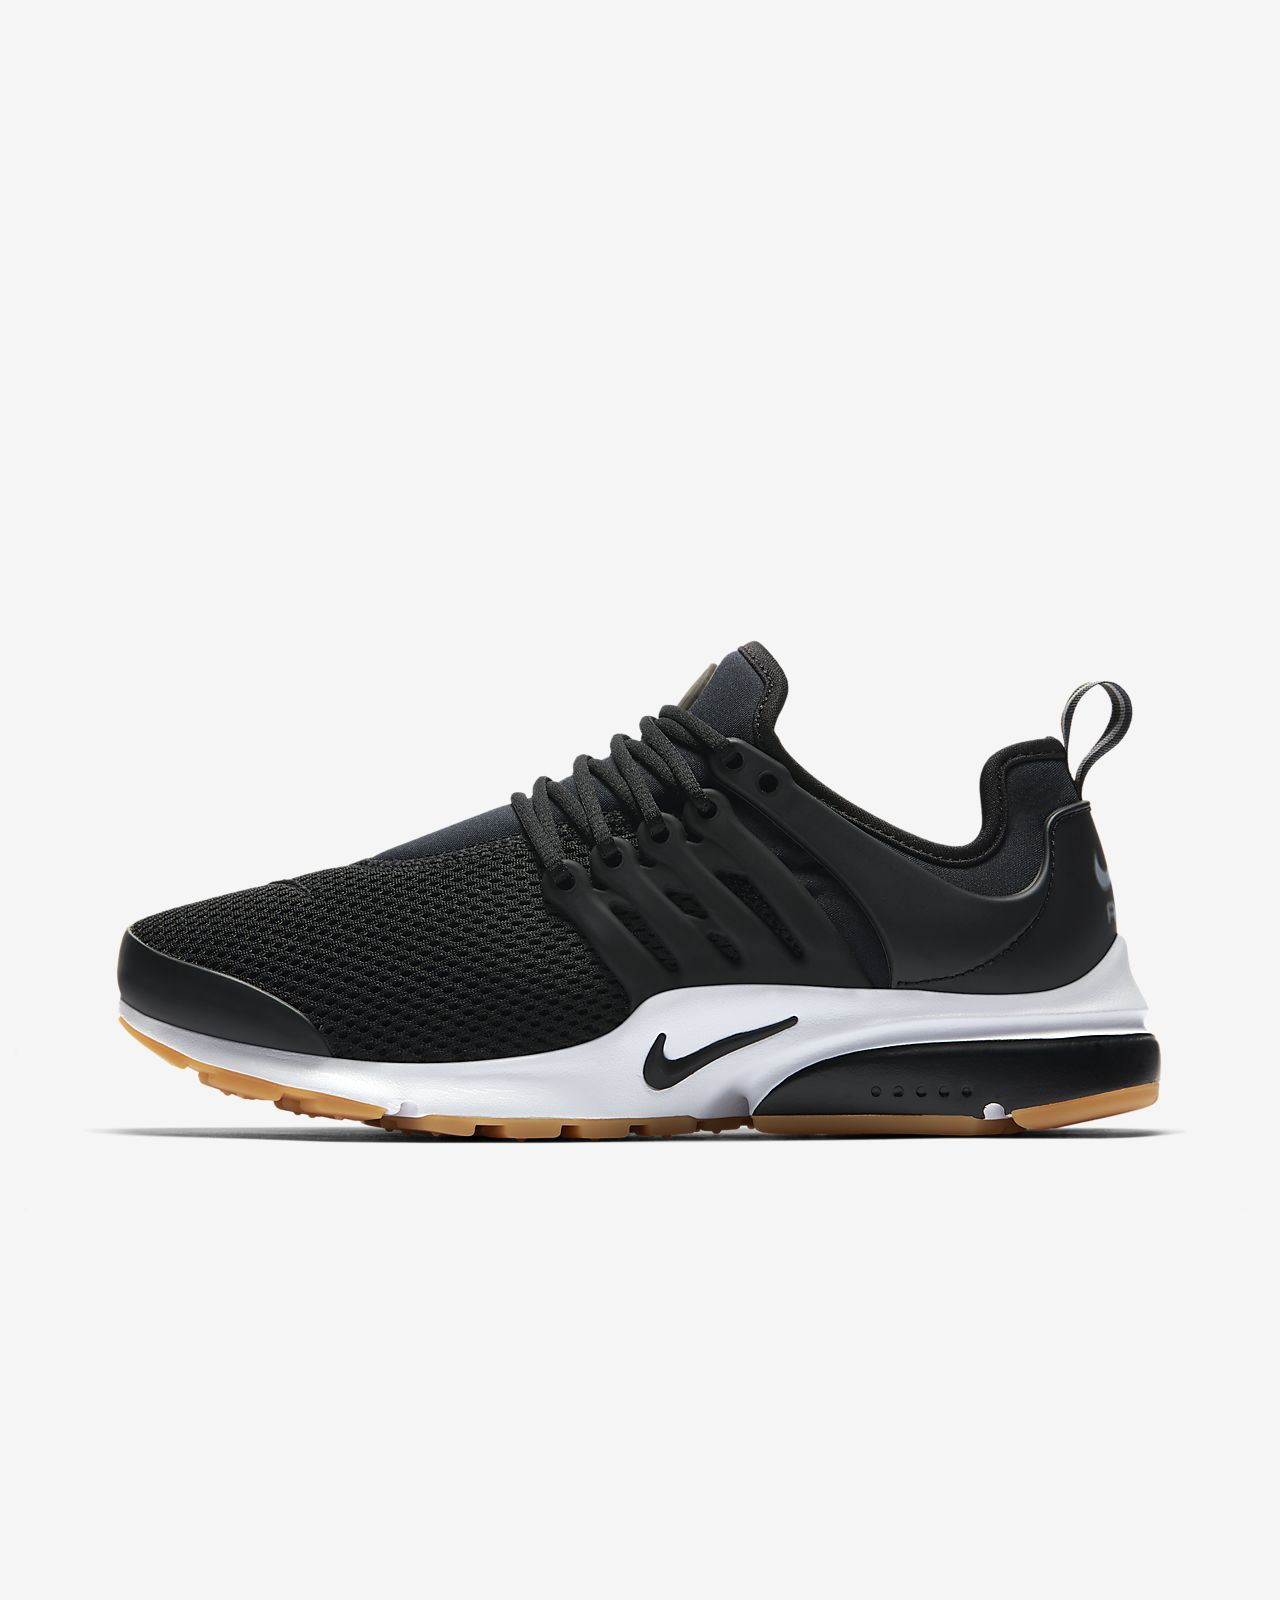 cd01d417fddac Nike Air Presto Women s Shoe. Nike.com